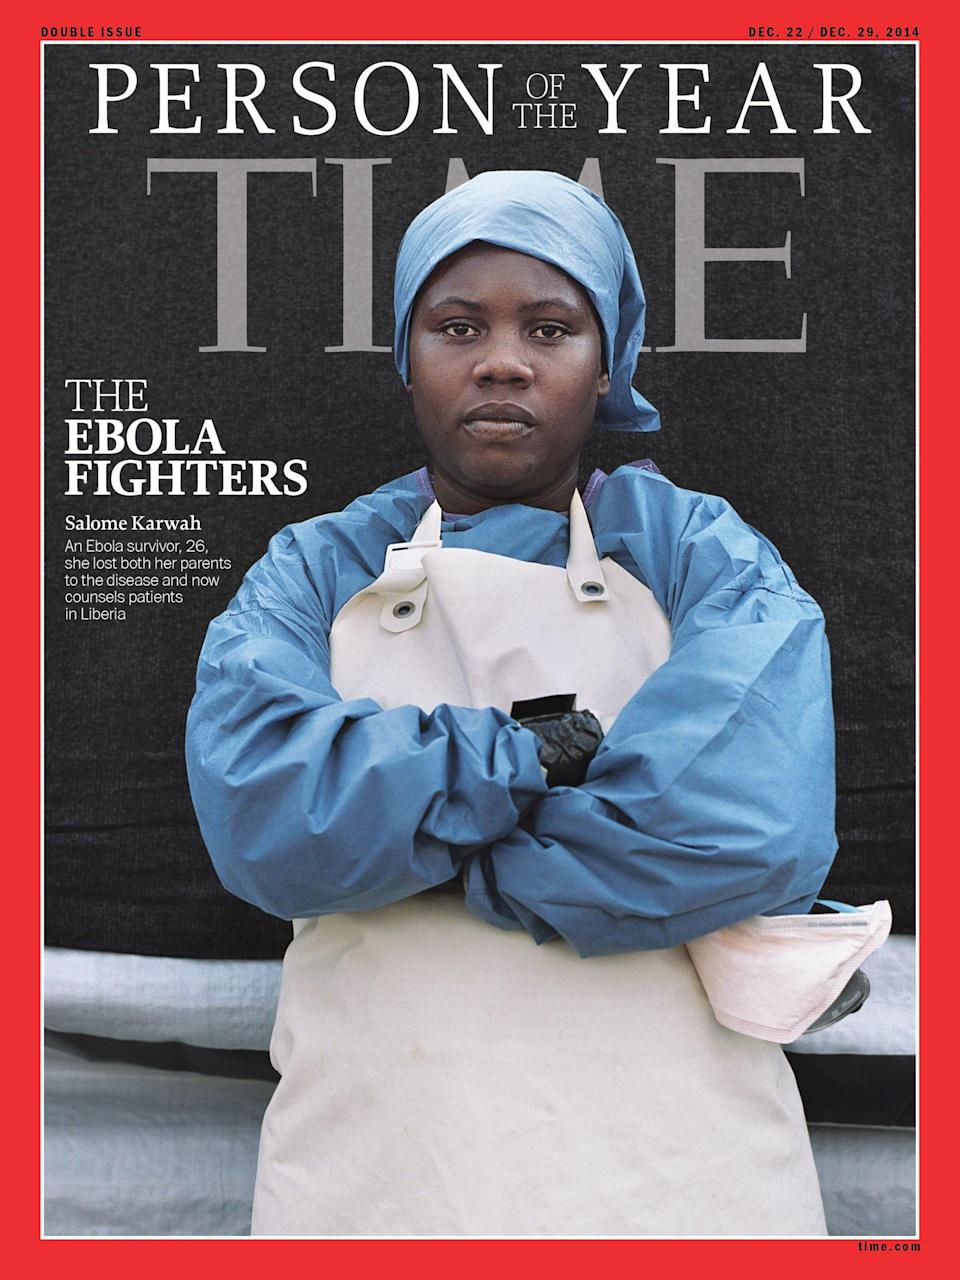 Salome Karwah was on the cover of TIME as 2014's Ebola Fighters Person of the Year. She died Feb. 21, a victim of Liberia's broken medical system and the lingering stigma for those who survived the disease.